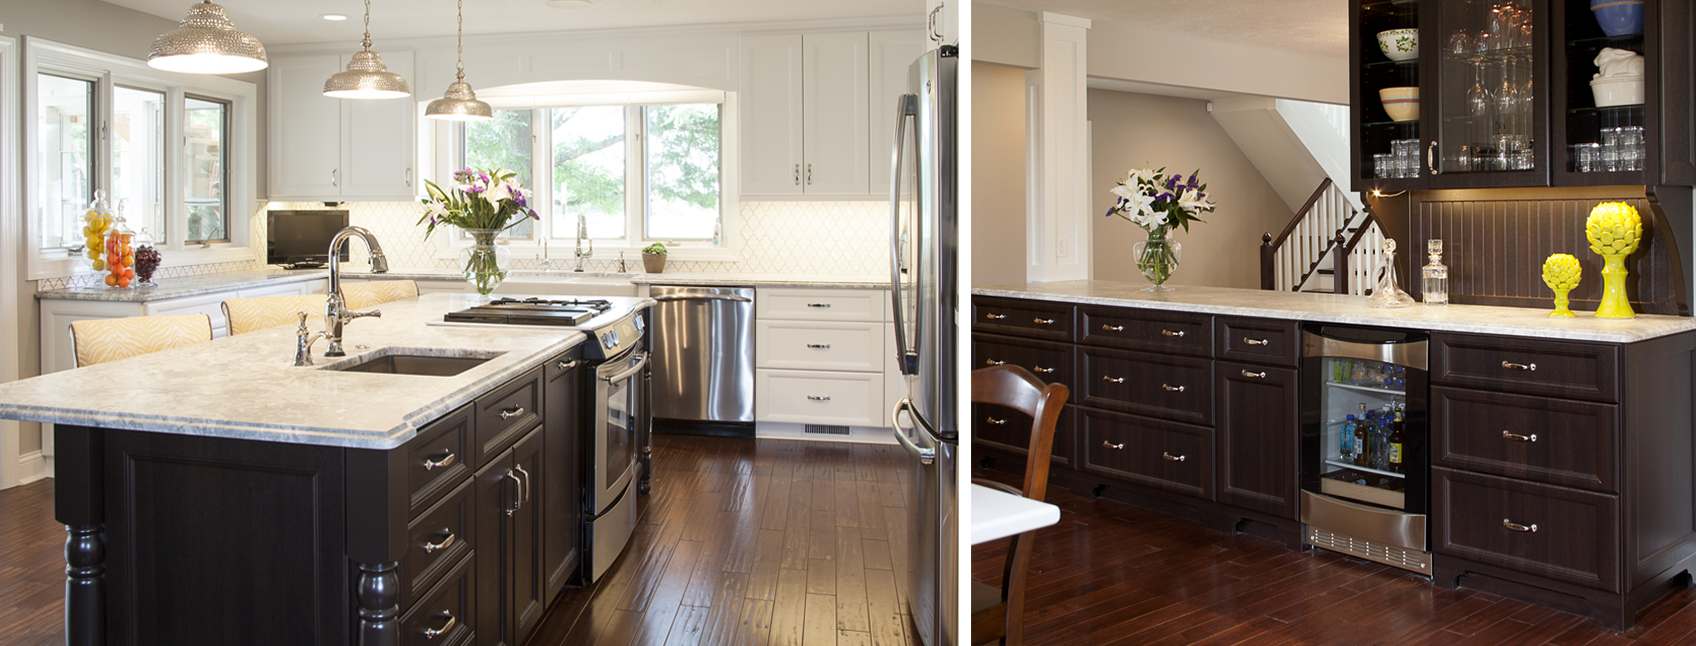 millwork kitchen cleveland cabinets company ohio index cabinet pro